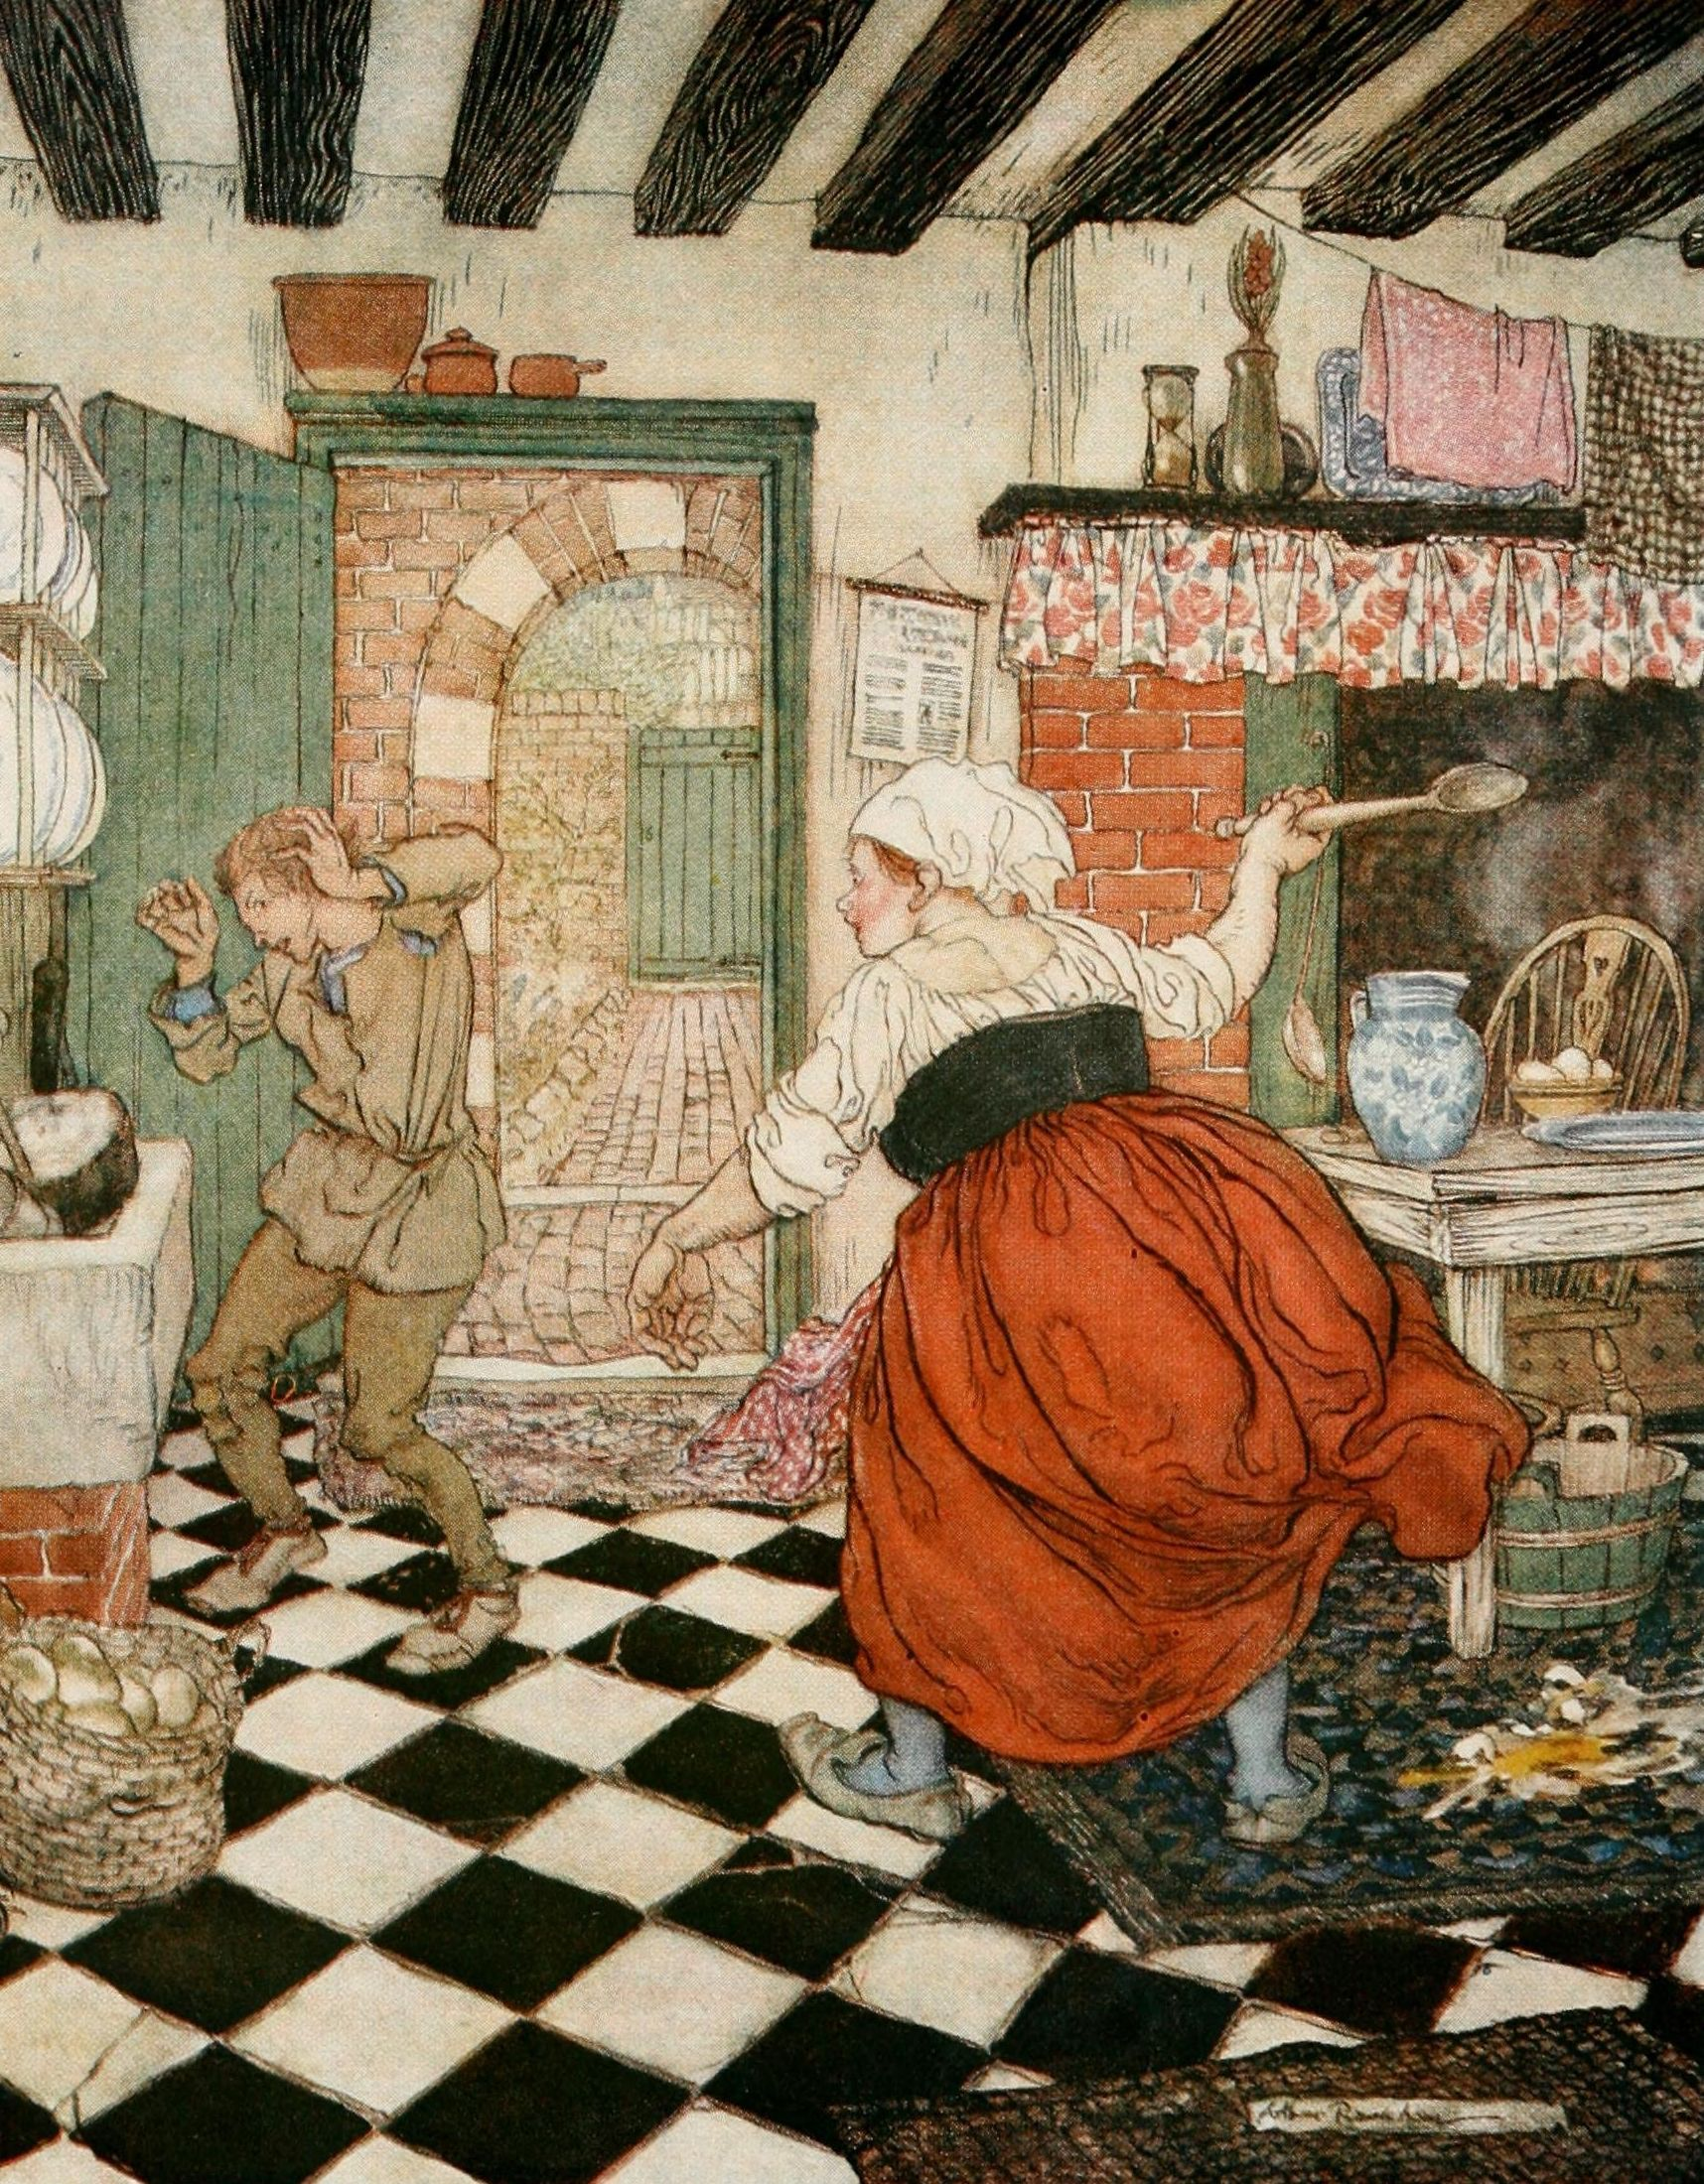 English Fairy Tales 1927-12.jpg 1,716×2,200 pixels